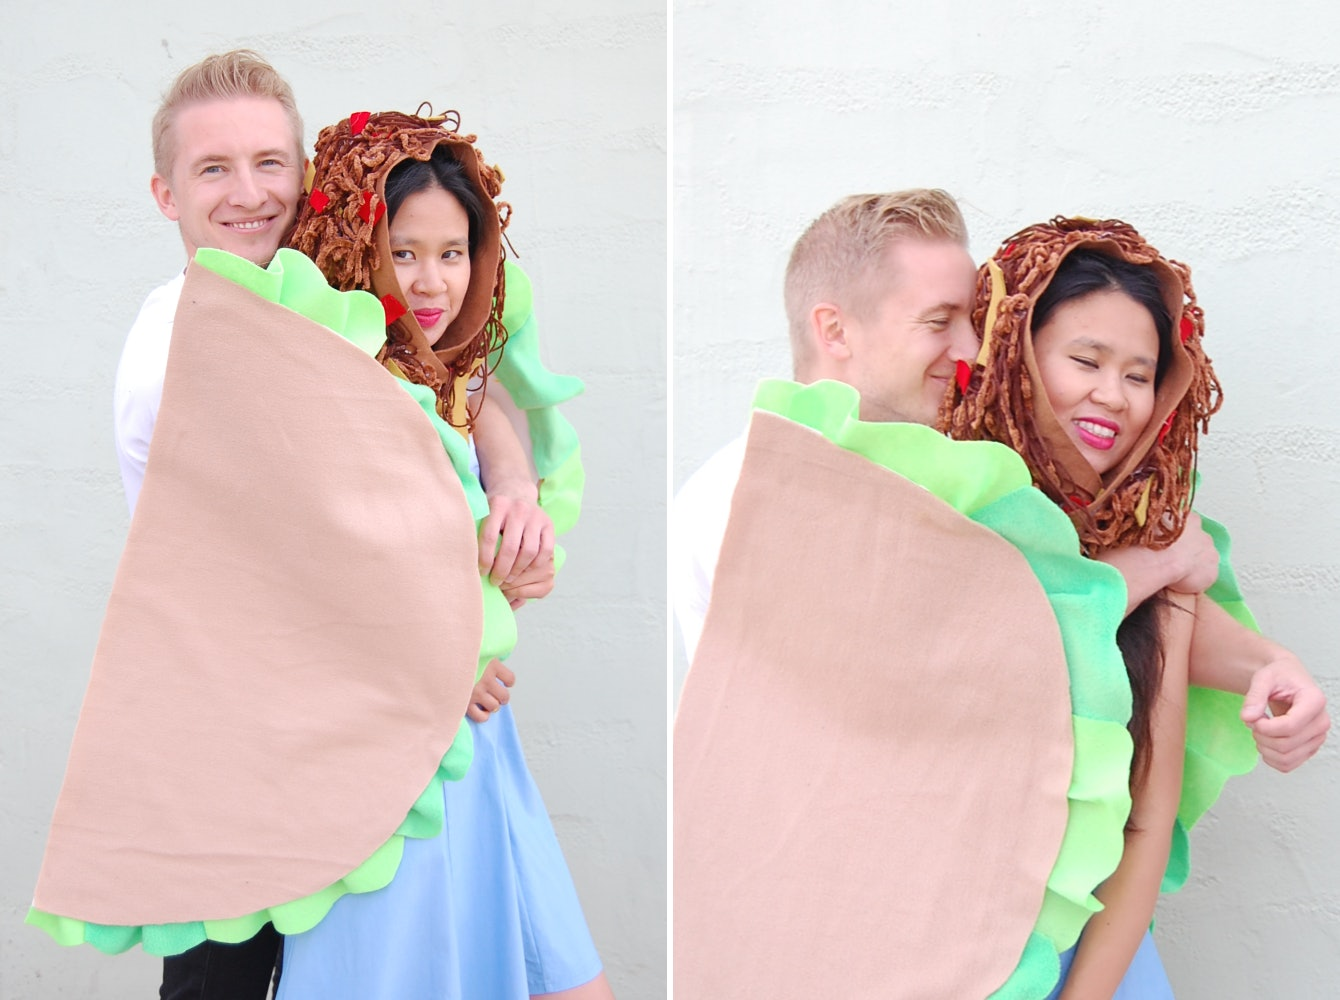 sc 1 st  Bustle & A Taco Halloween Costume Idea For Couples That Is Too Cute For Words